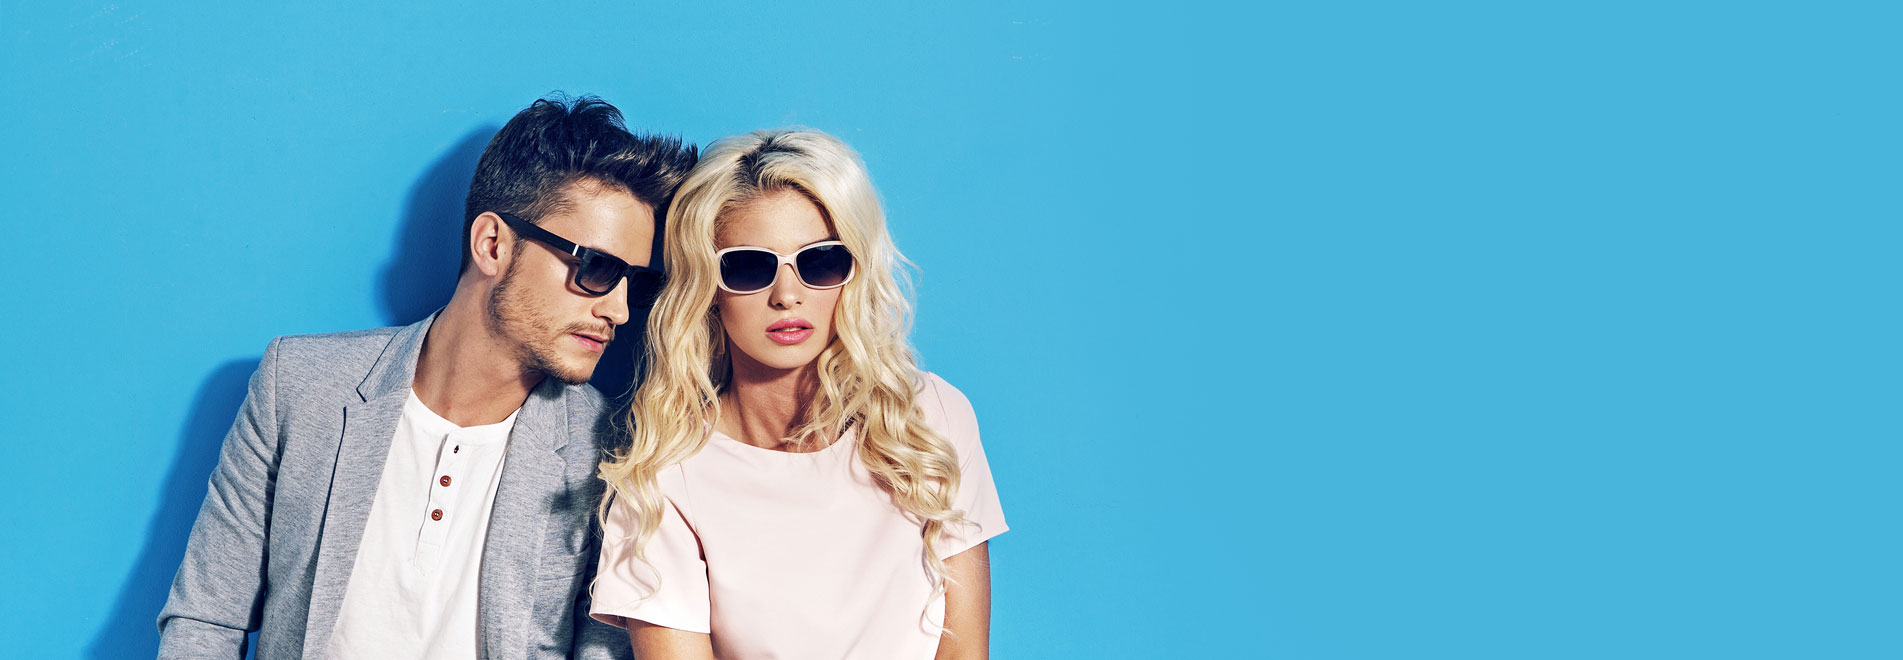 Lady and gent wearing sunglasses